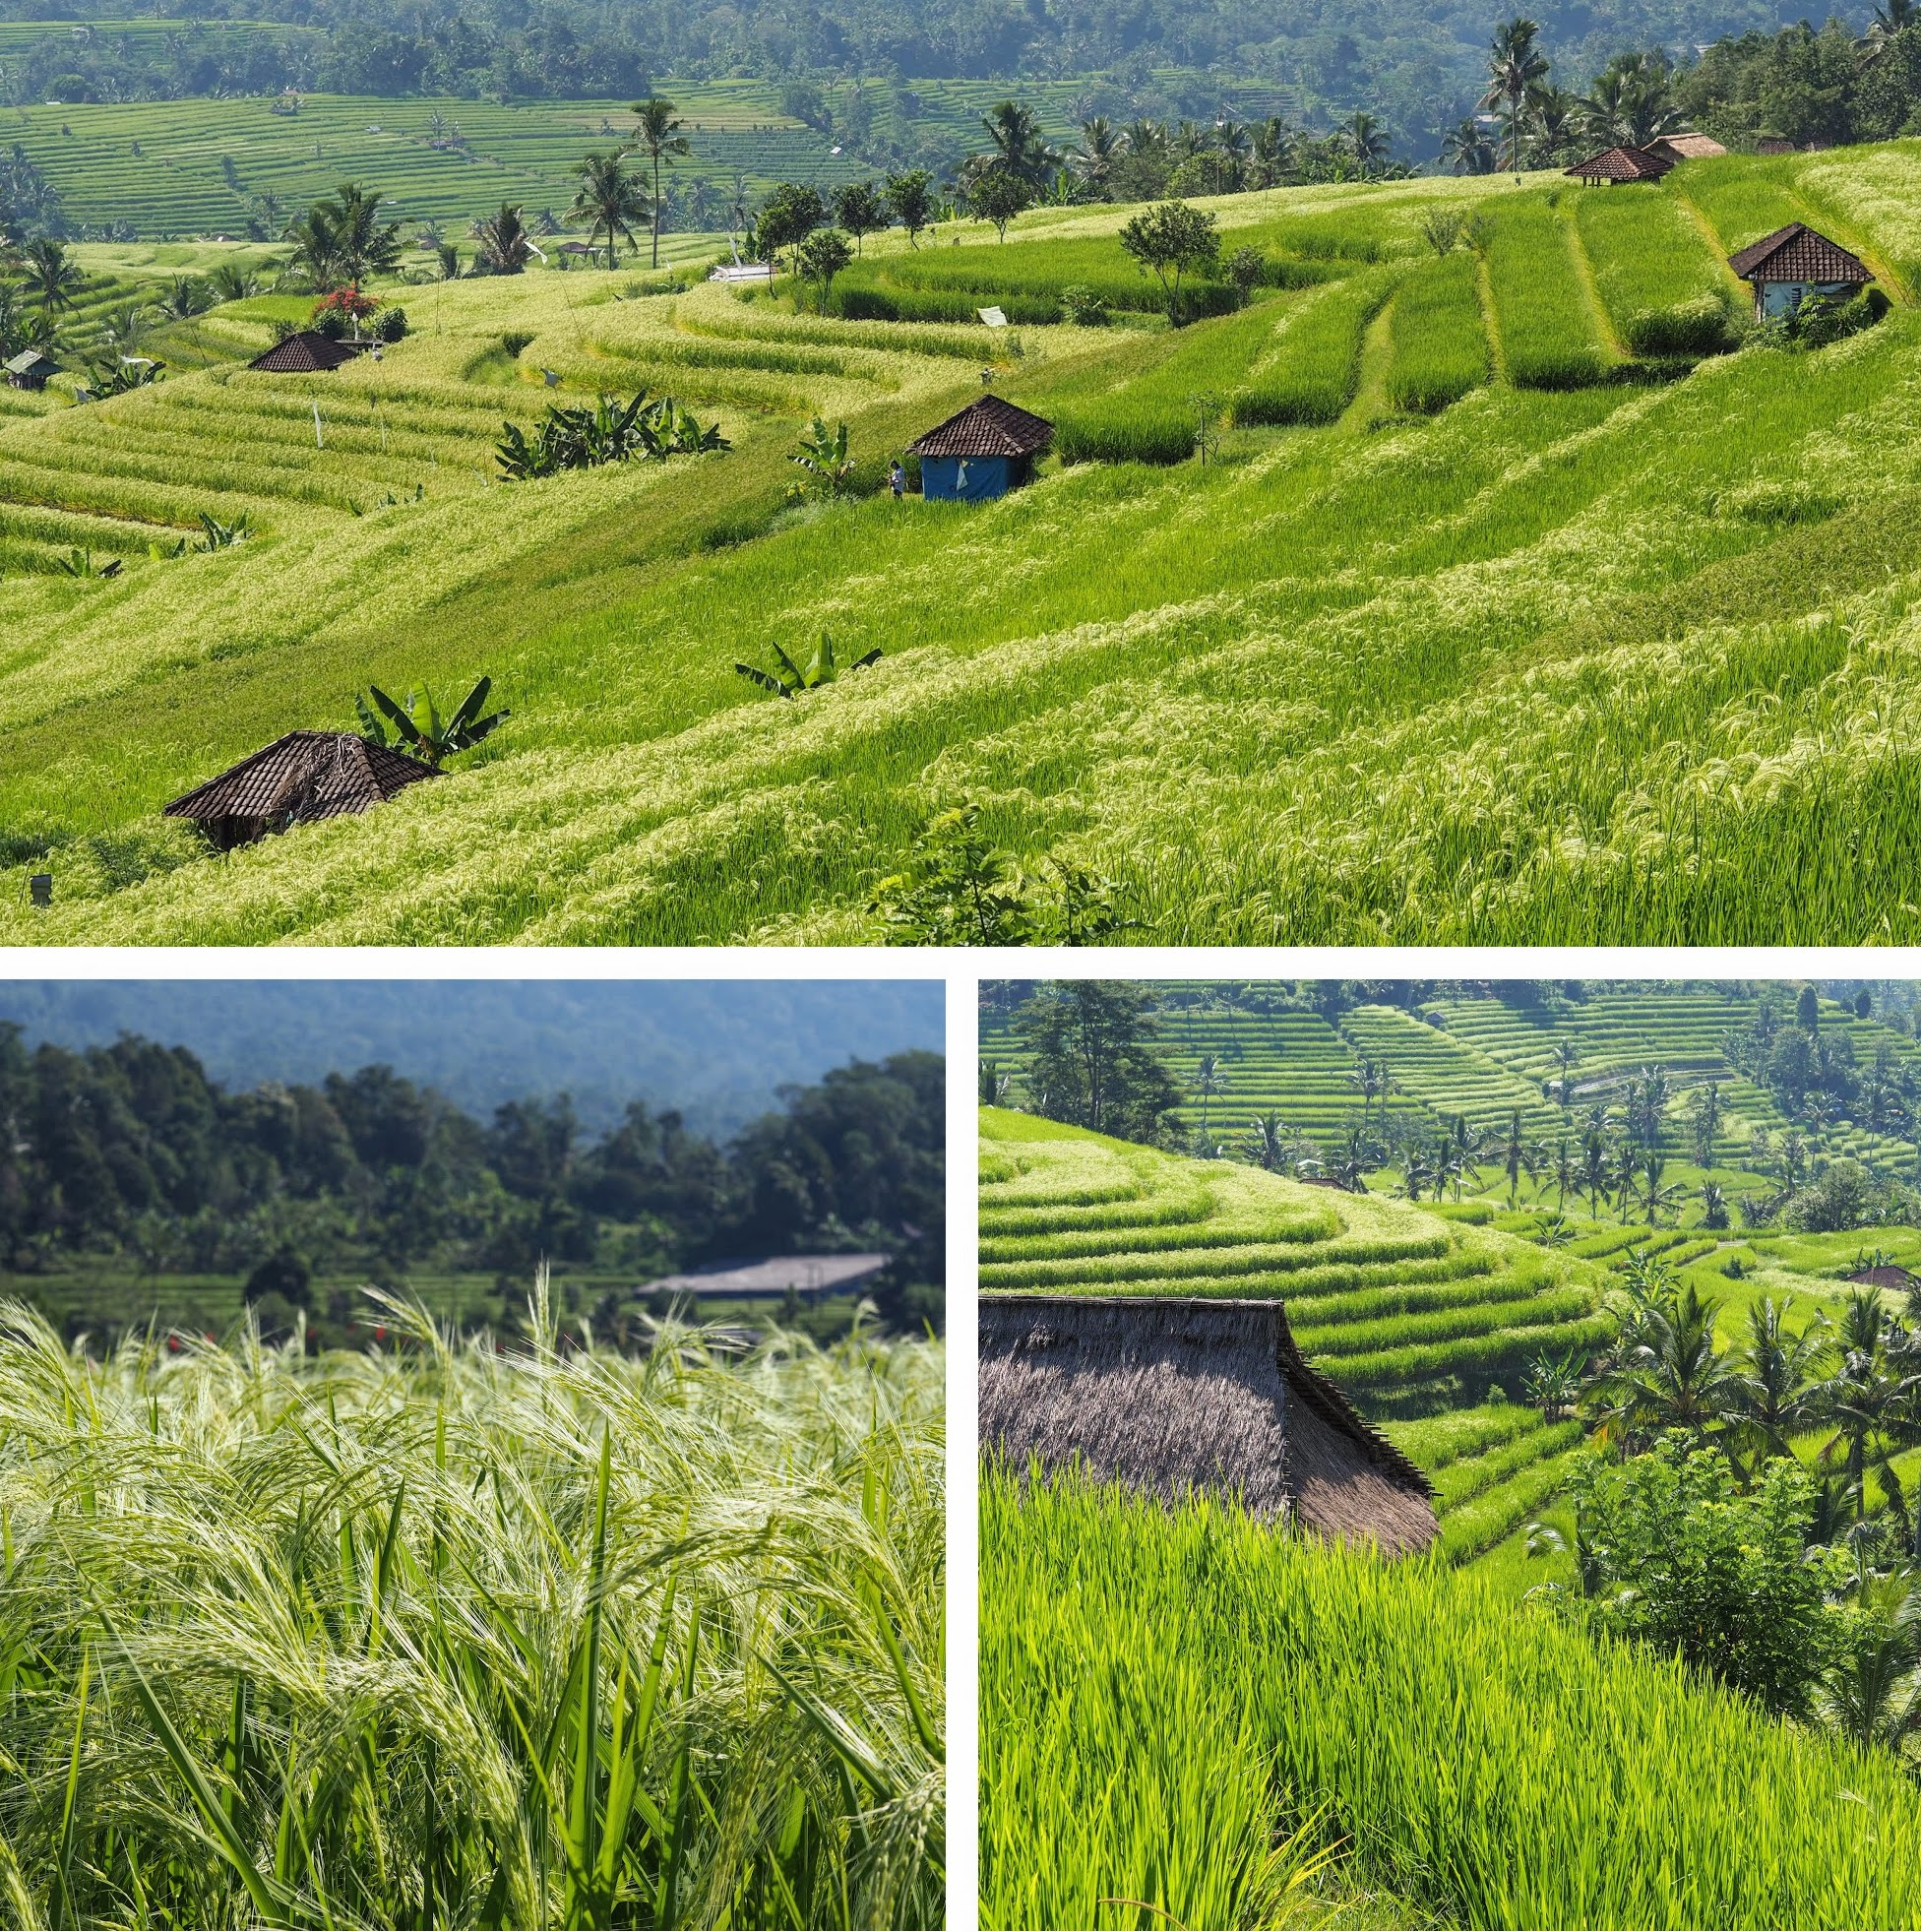 Jatiluwih Rice Terraces in central Bali